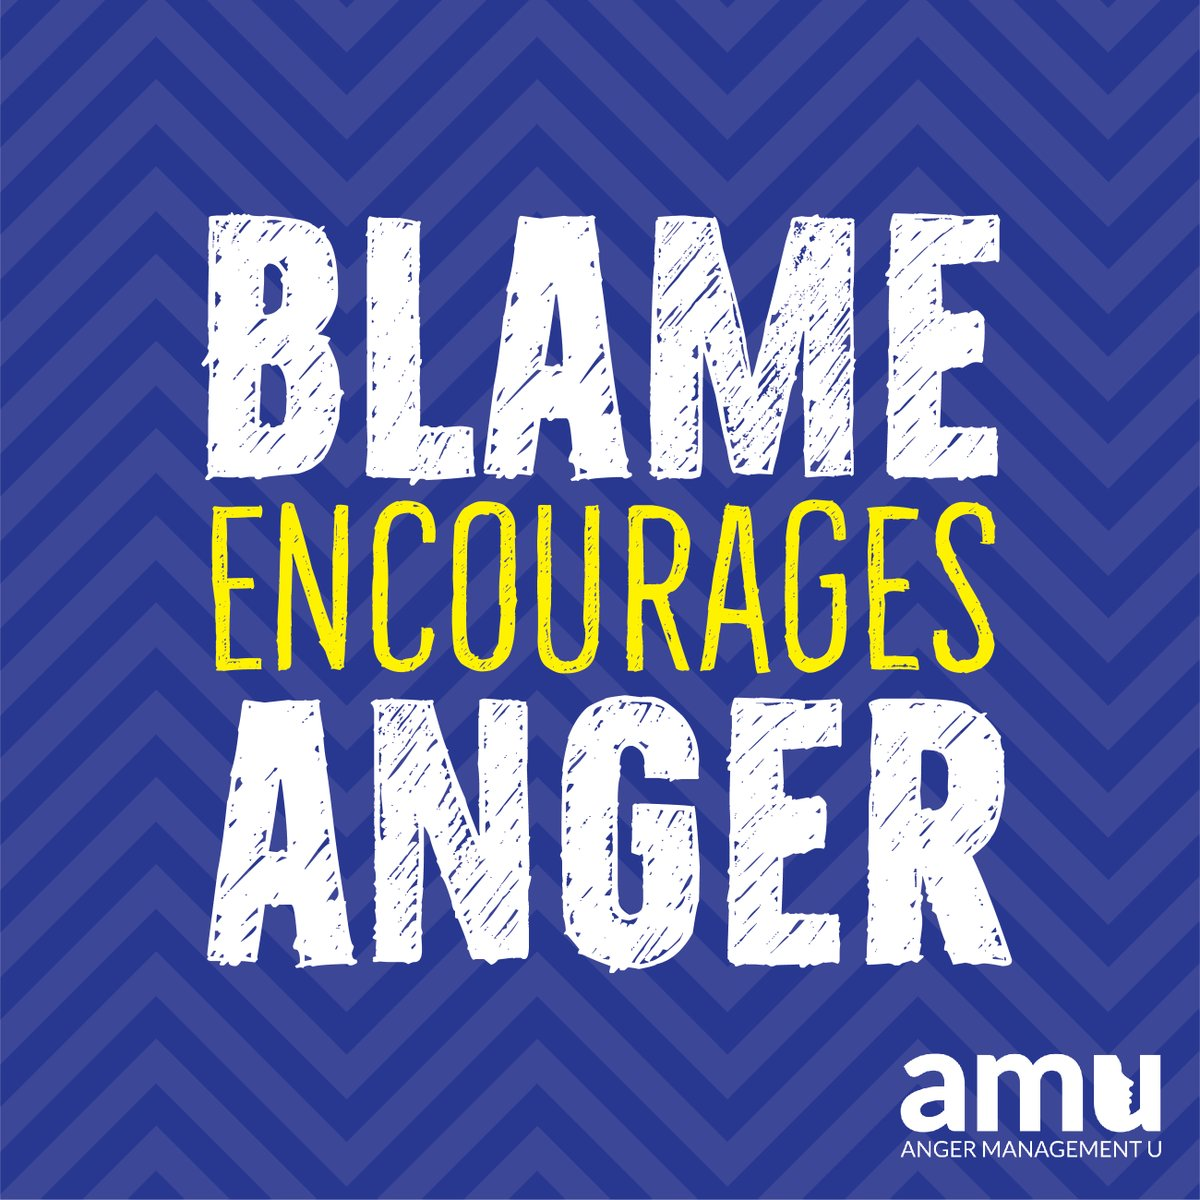 Did you know that #blame is one of the first signs of #anger? Blaming creates emotional distance between you and others, making it easier to get angry. Instead of blame, try taking responsibility and focusing on what you can control. #yougotthis https://t.co/4RjyX7vnZG